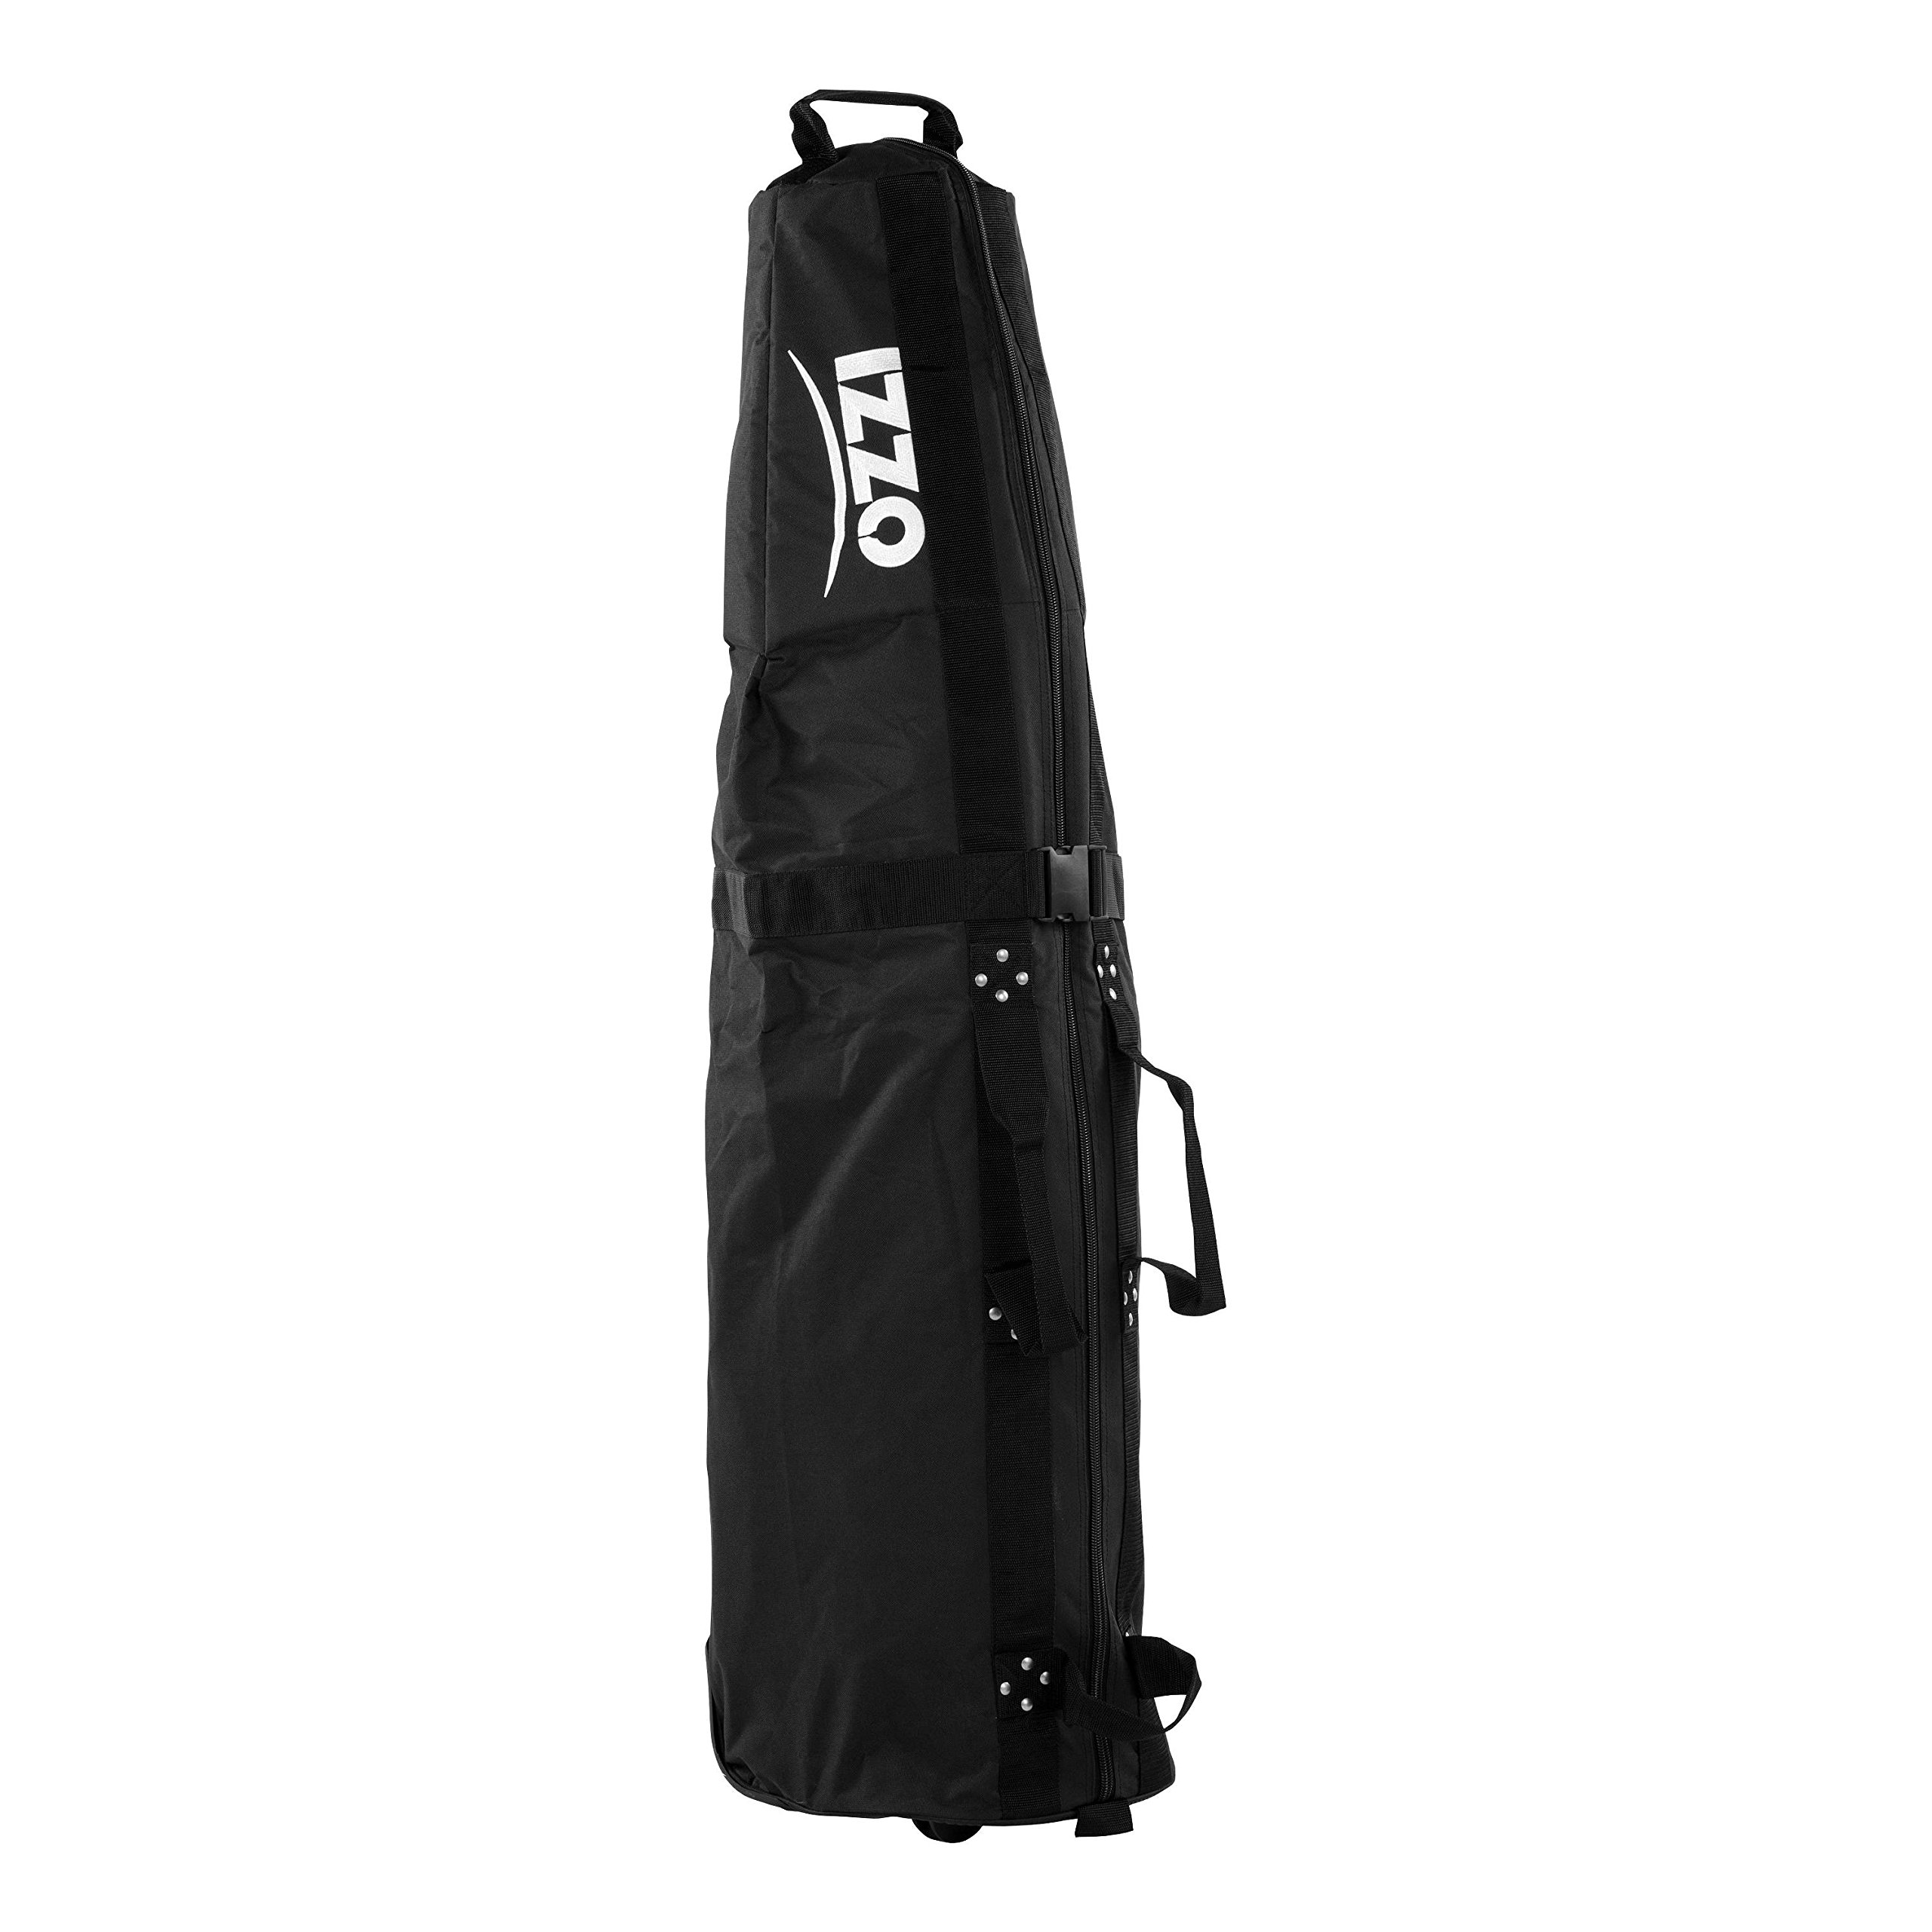 IZZO Golf Two-Wheeled Golf Bag Travel Cover by IZZO Golf (Image #1)